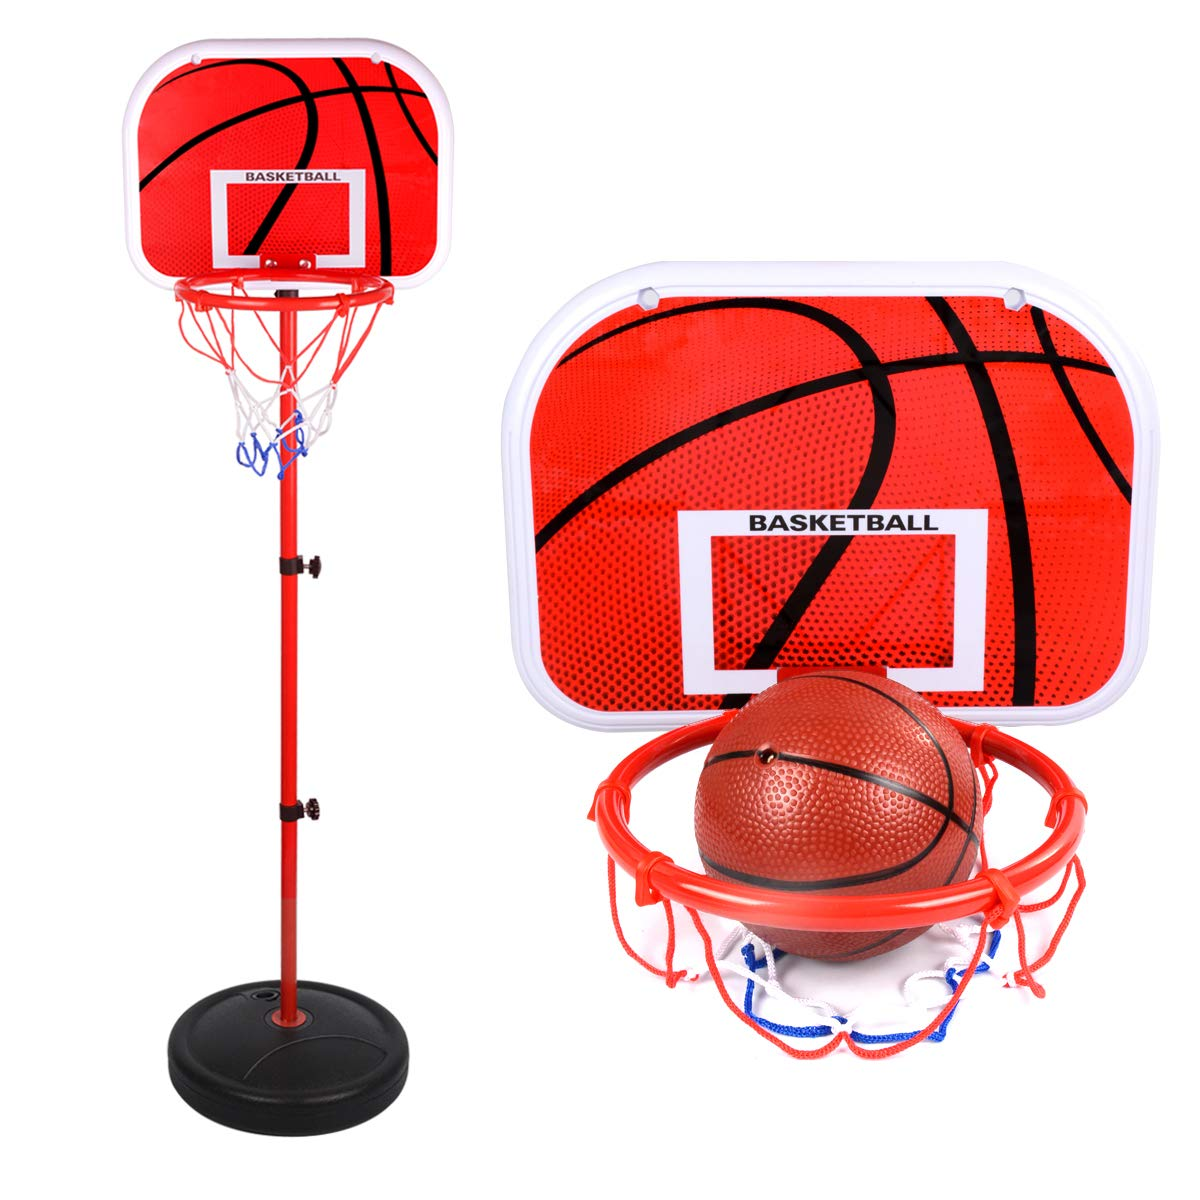 Oucles Adjustable Basketball Hoop Stand Set Sports Toy Game Portable Basketball Stand and Hoop Including Pump Indoor Outdoor Toys Height Up to 60 inch for Toddler Kids Children